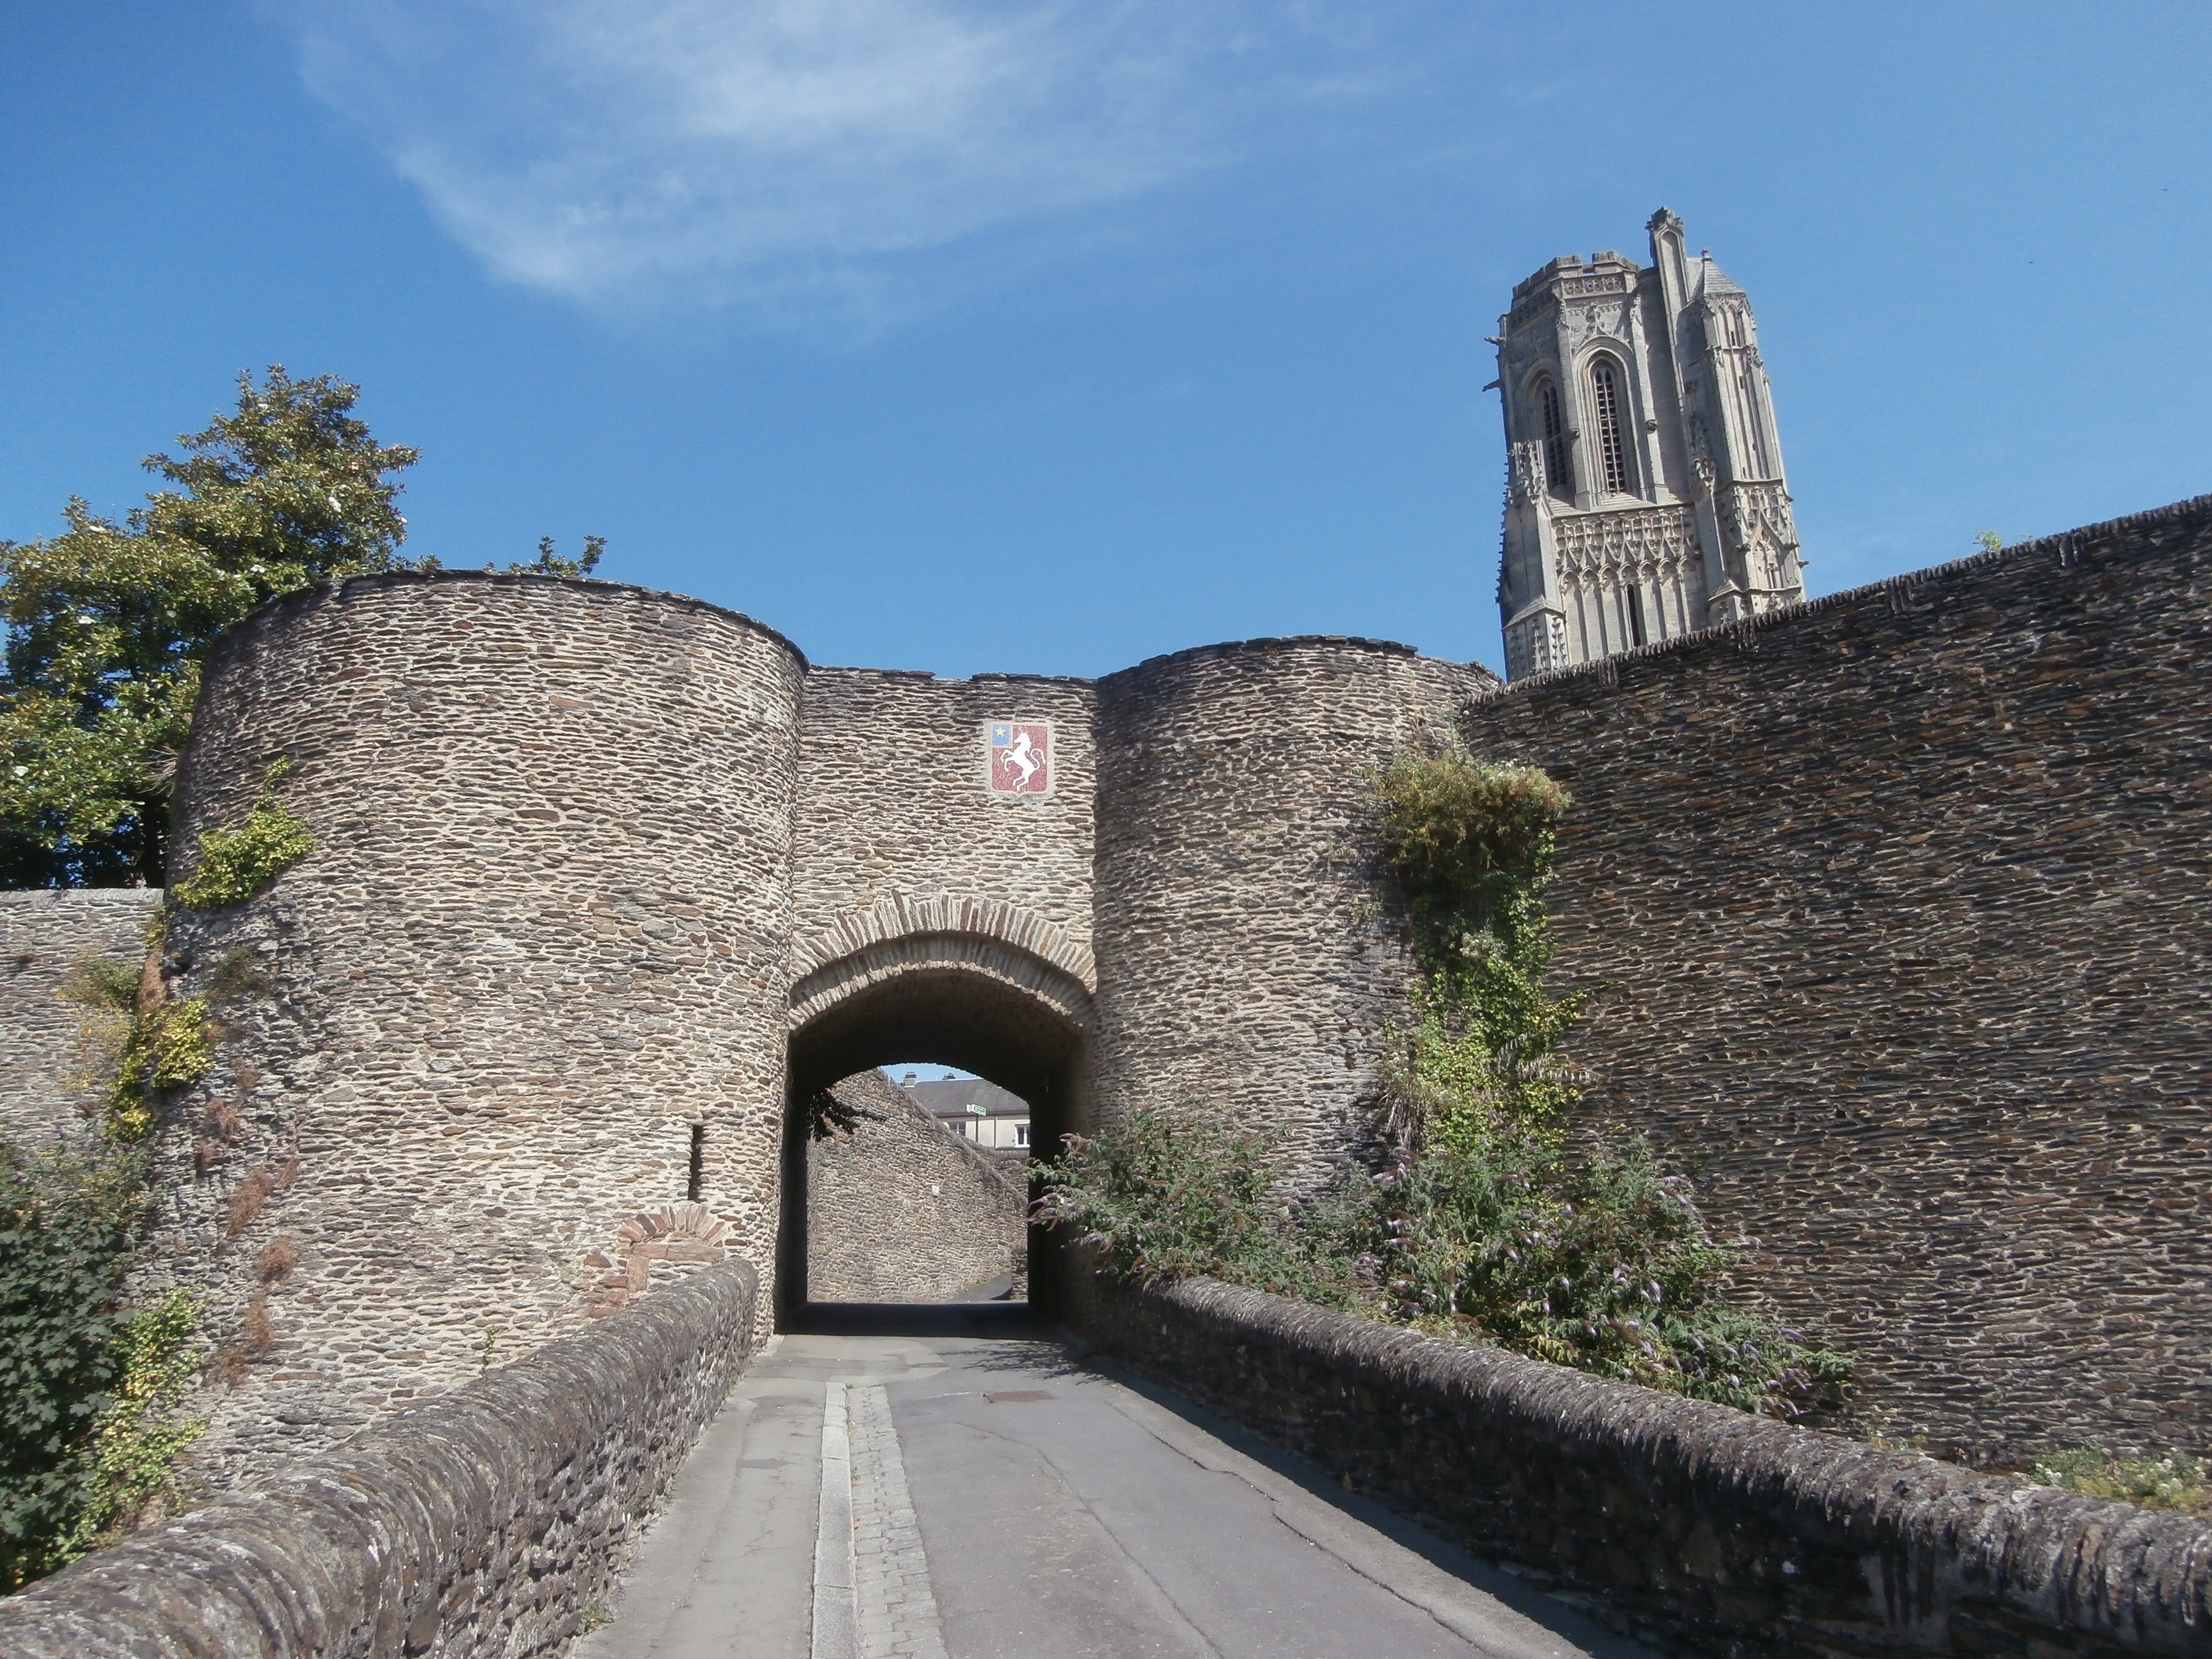 Entrance gate on the city walls